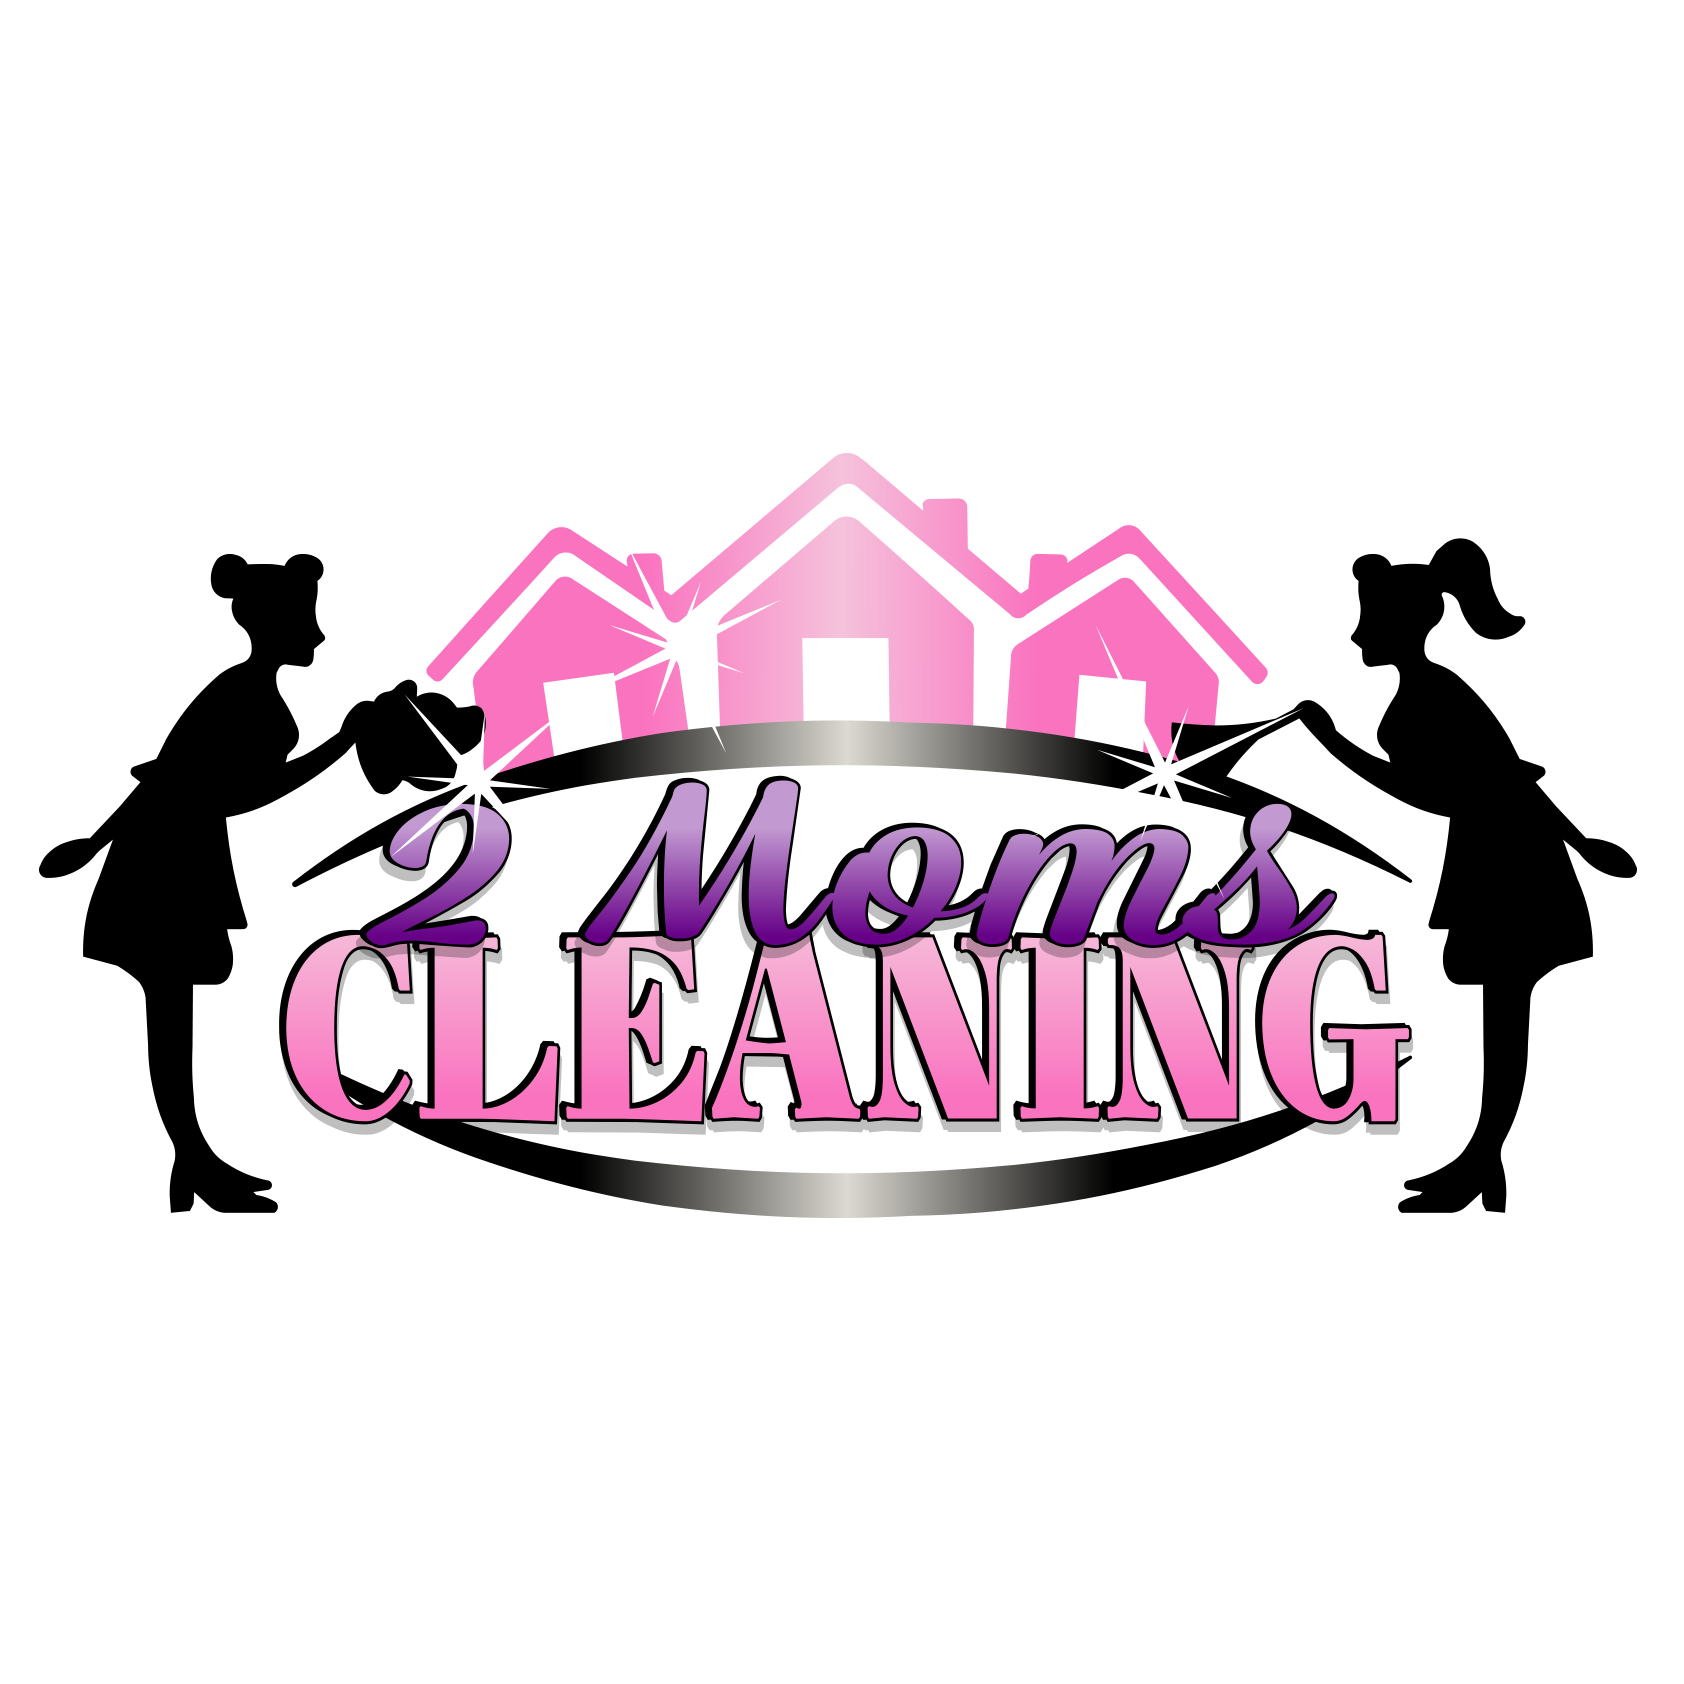 2 Moms Cleaning